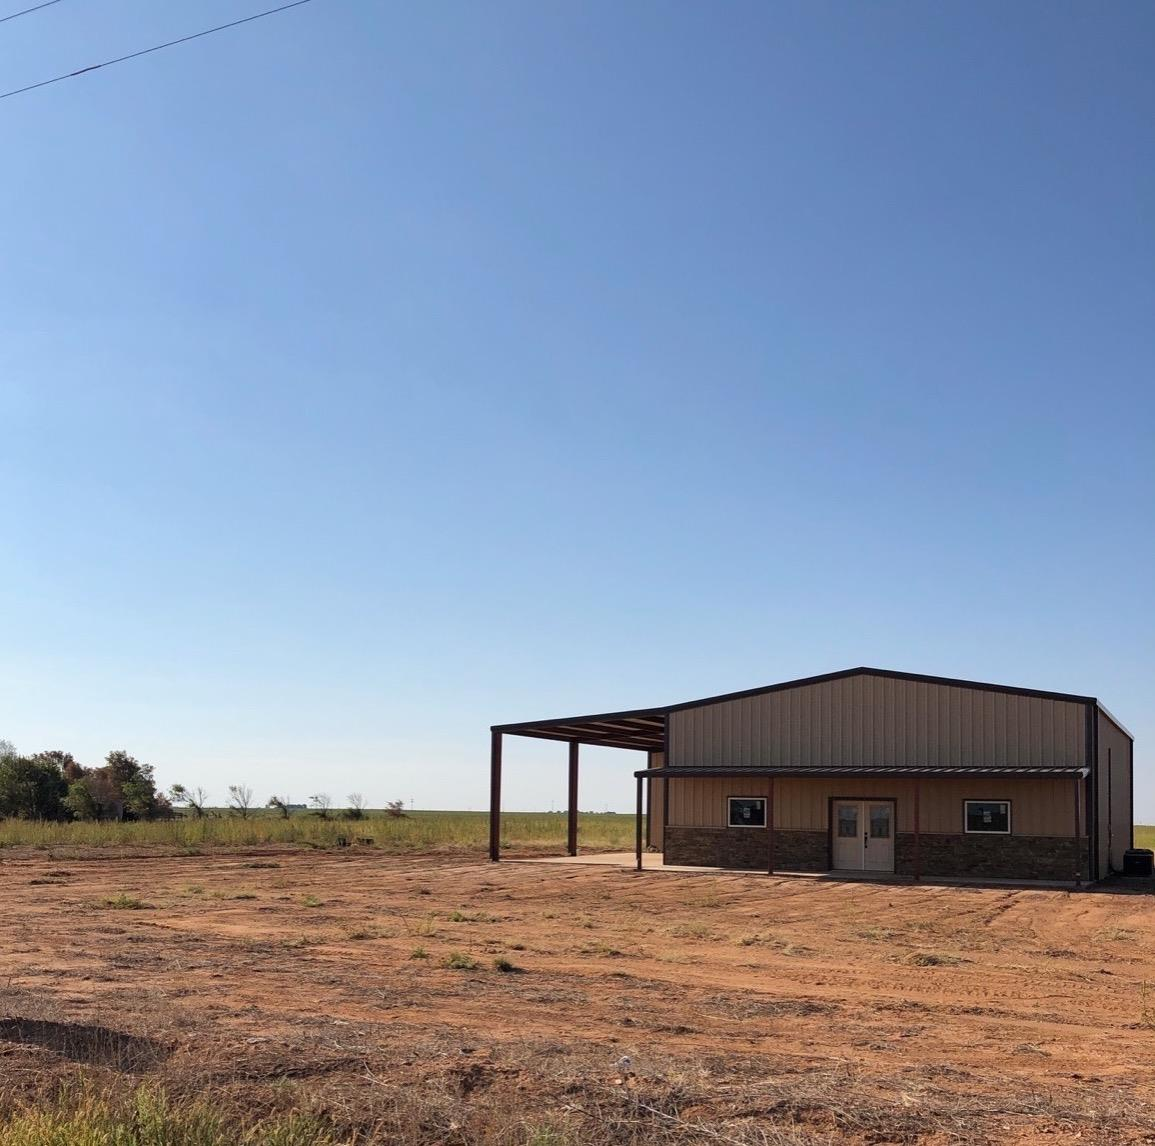 This unfinished bardominium is EVERYTHING! With all the storage you can dream of with 800 sq. ft incomplete and 1900 sq. ft completed. Price reflects selling as is. Schedule your showing today for this opportunity to make it your own!